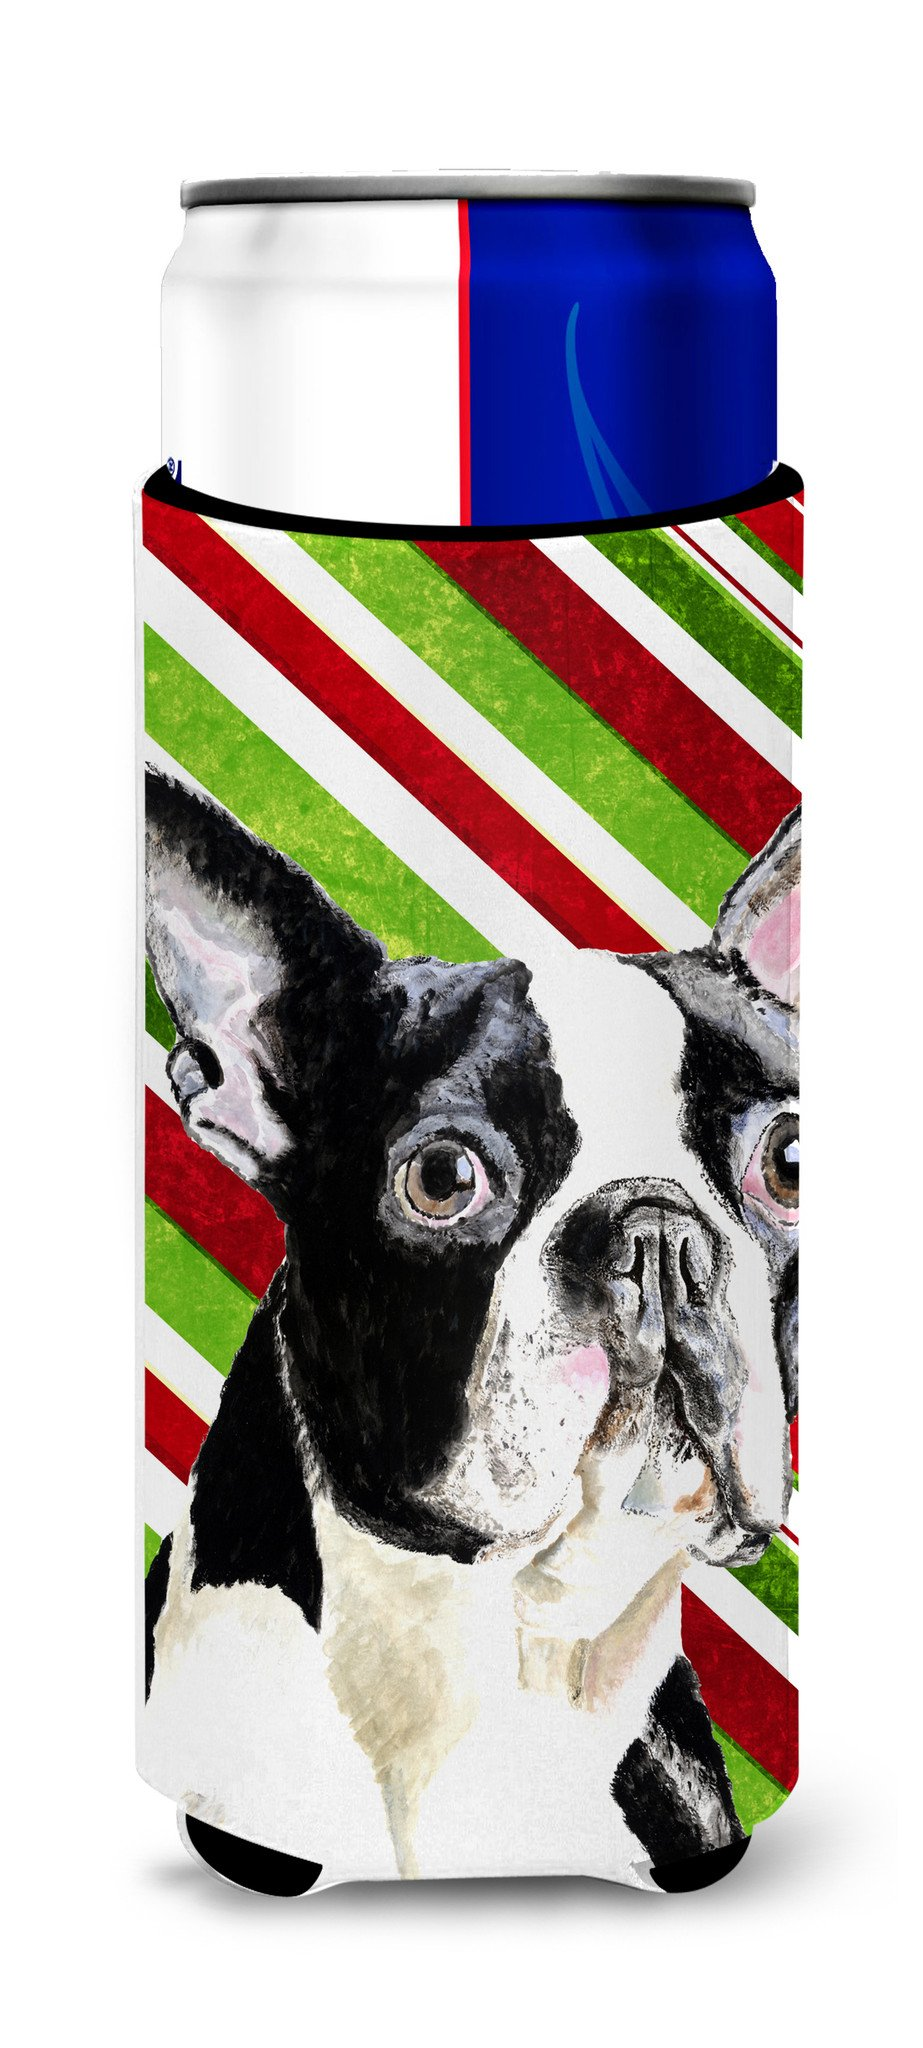 Boston Terrier Candy Cane Holiday Christmas Ultra Beverage Insulators for slim cans SC9320MUK by Caroline's Treasures